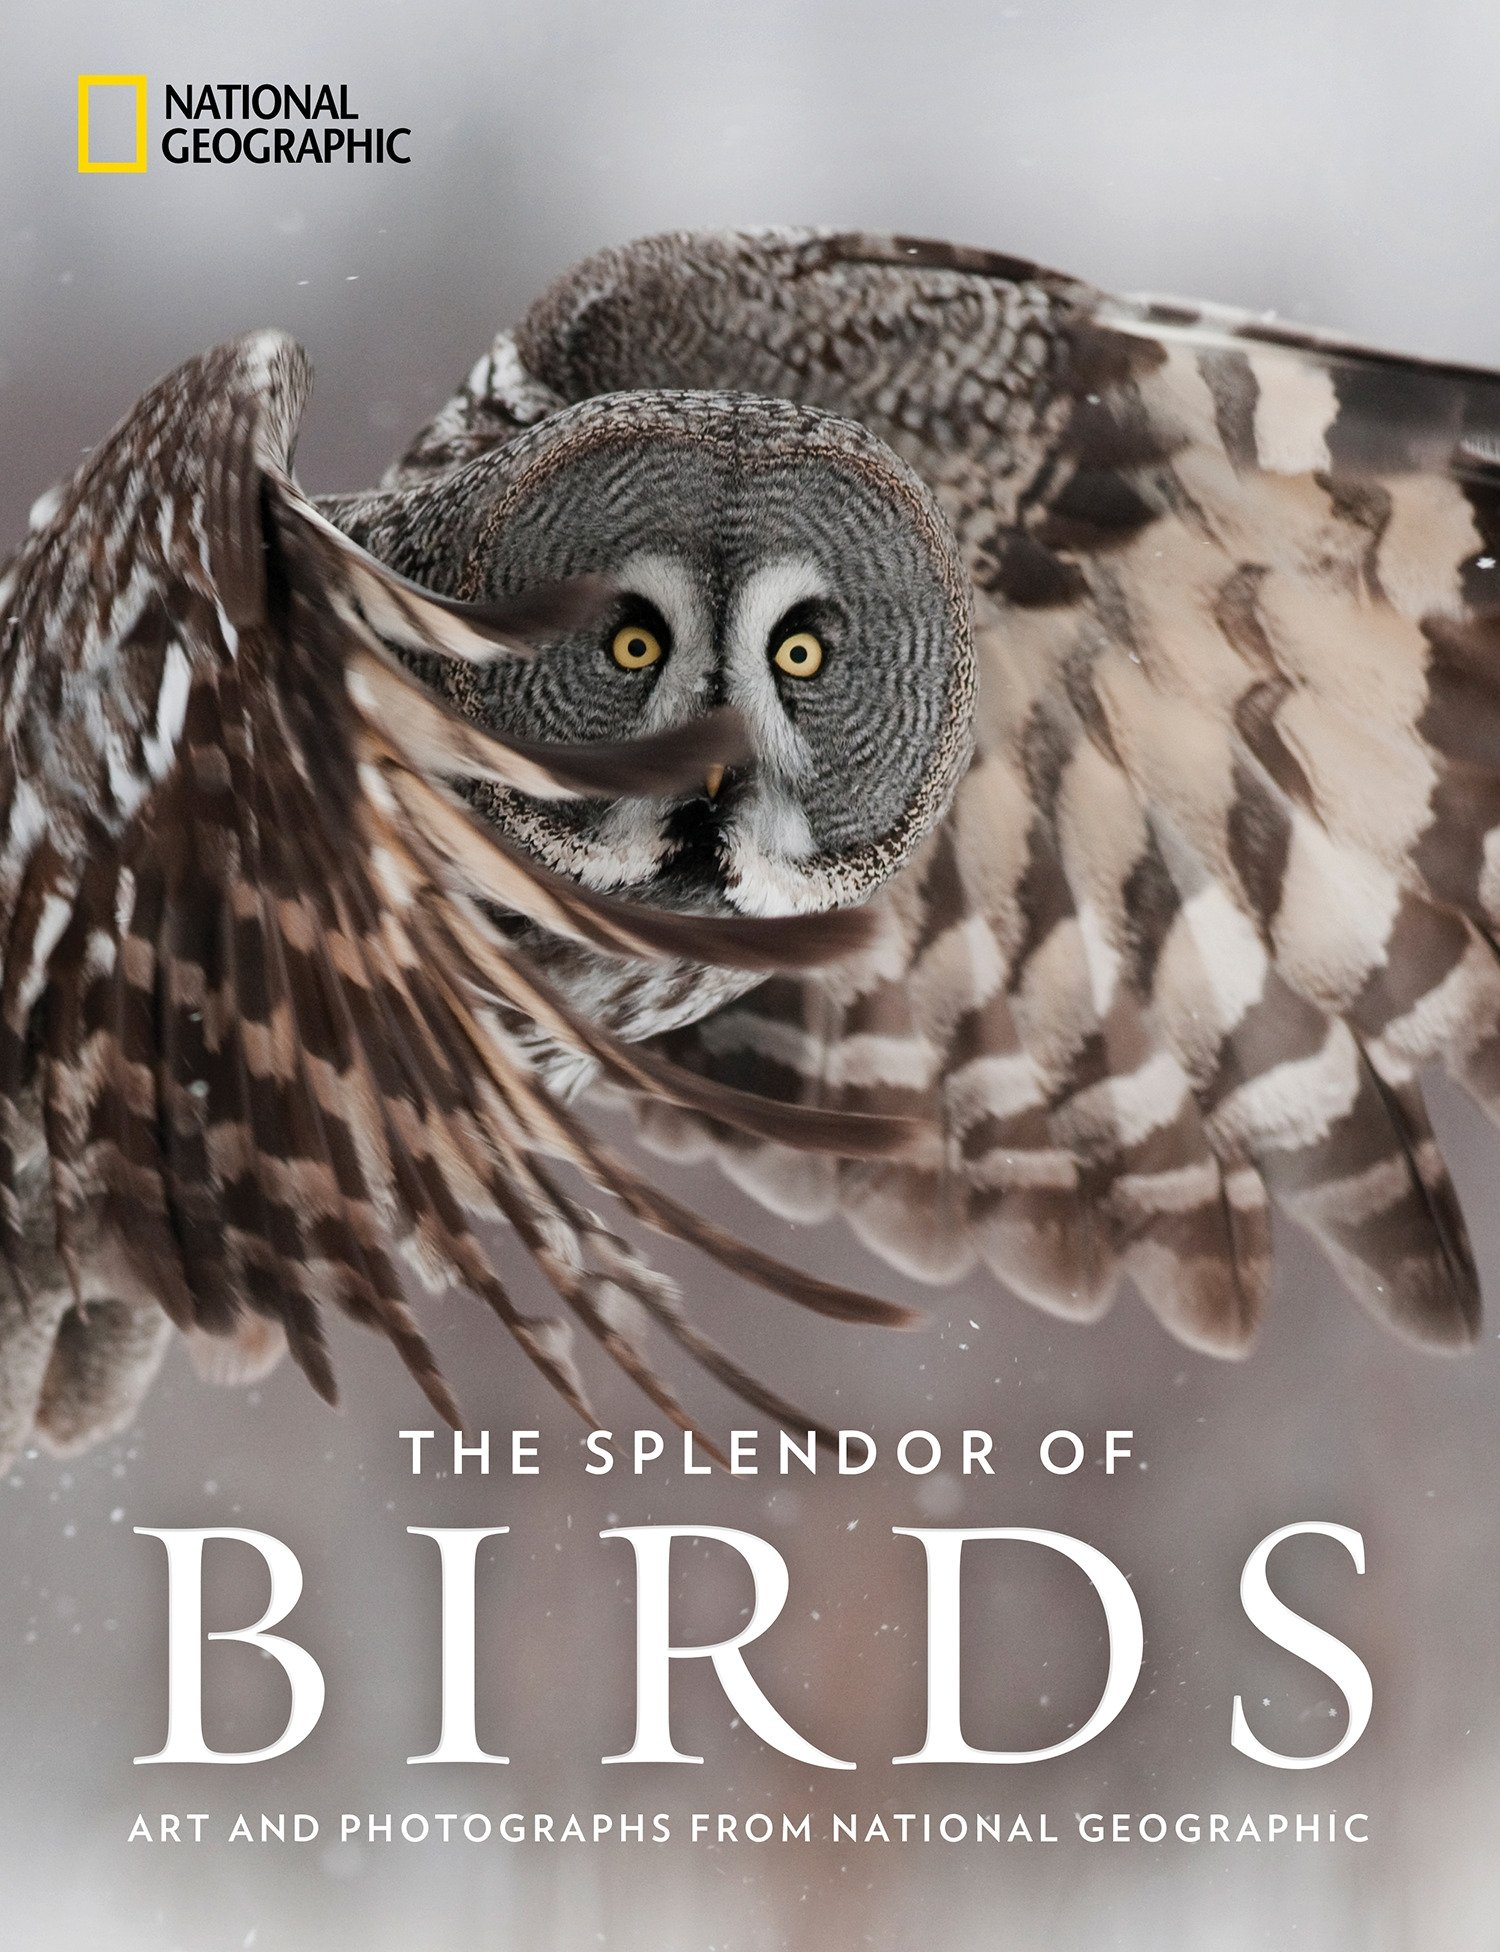 Image OfThe Splendor Of Birds: Art And Photographs From National Geographic